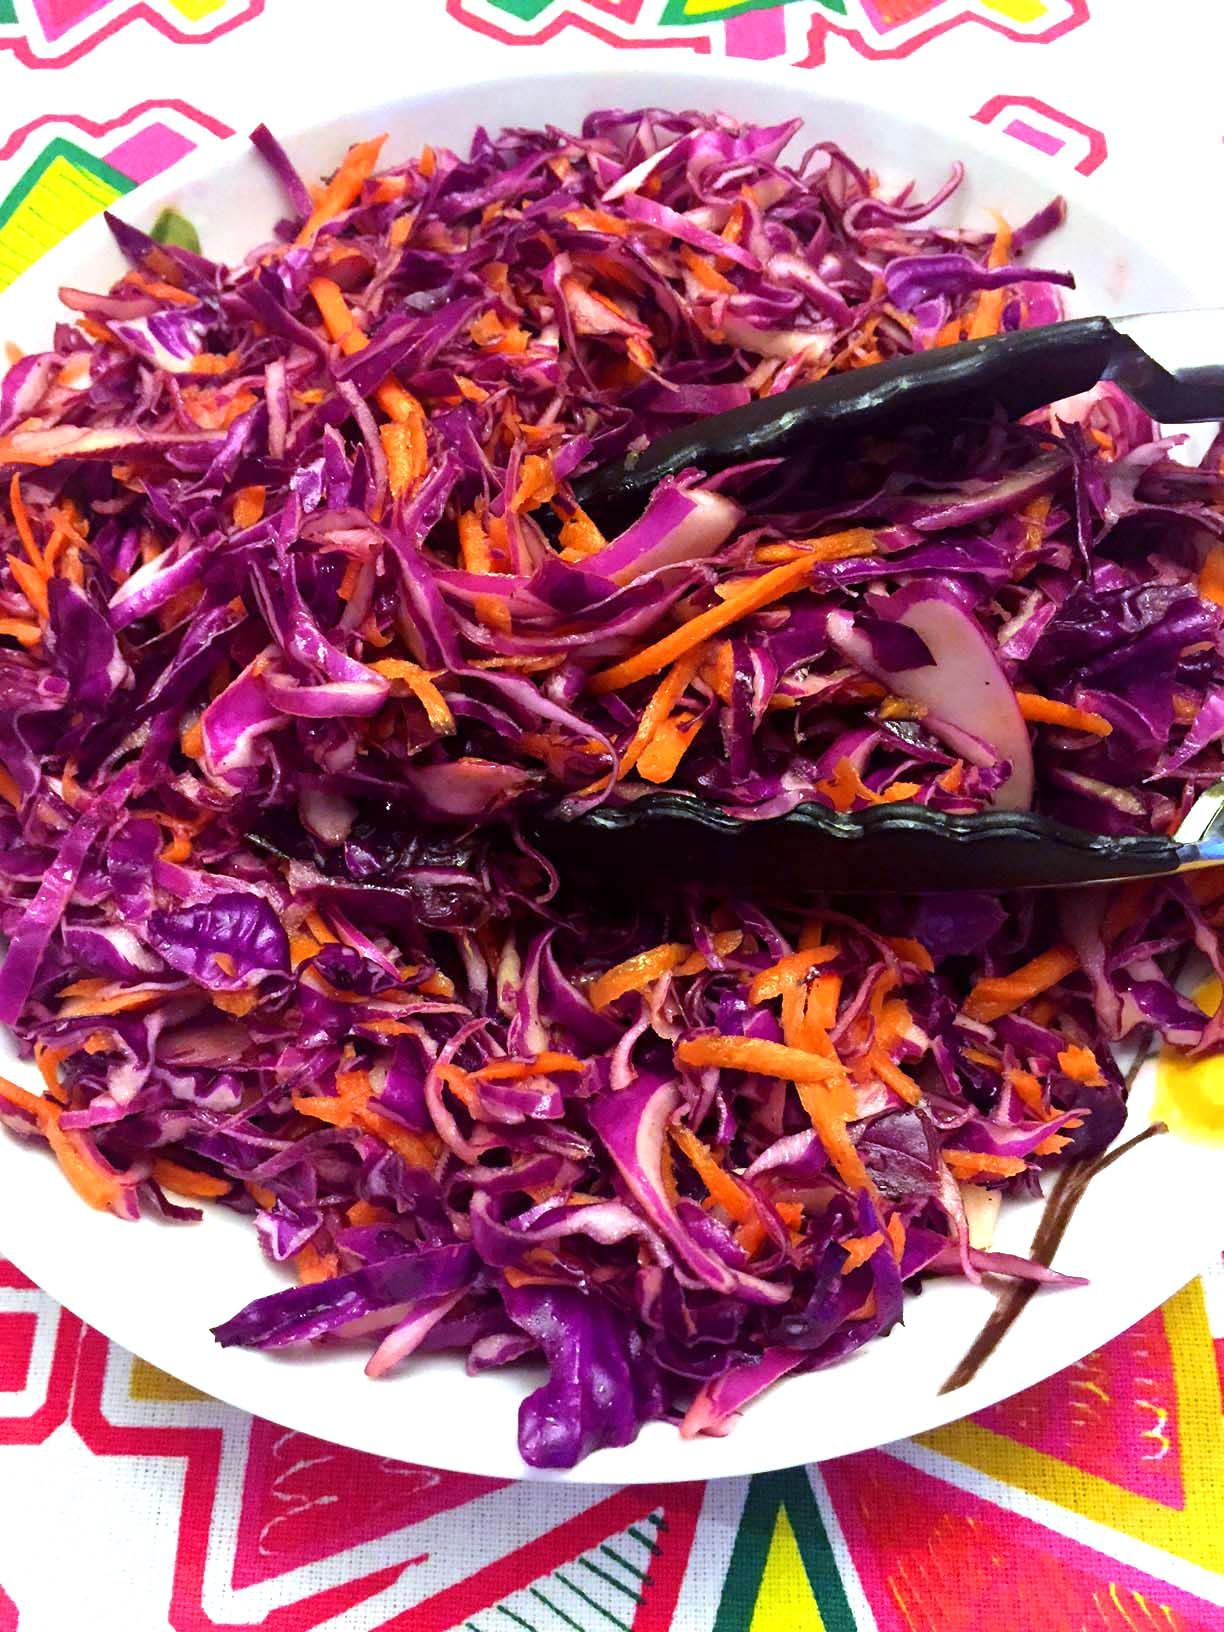 Healthy Red Cabbage Slaw Recipe Recipe Red Cabbage Slaw Recipes Red Cabbage Slaw Cabbage Slaw Recipes